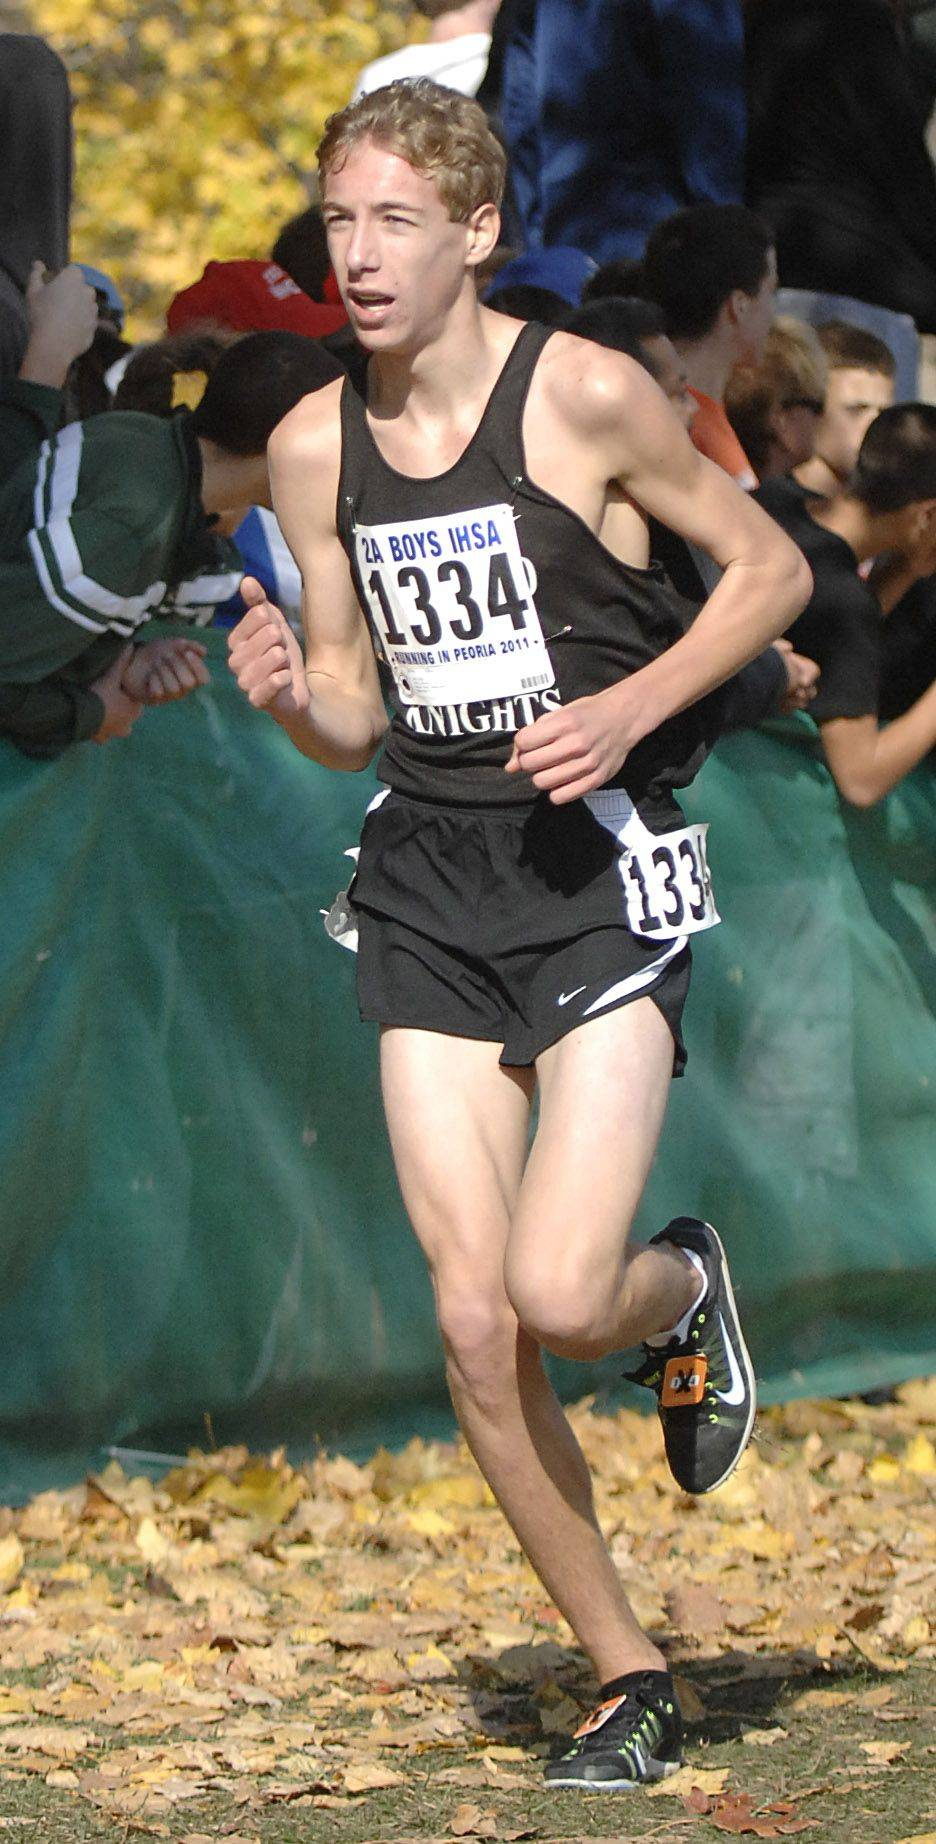 Kaneland's Kyle Carter takes 53rd place with a time of 15:45 in the 2A state cross country final.